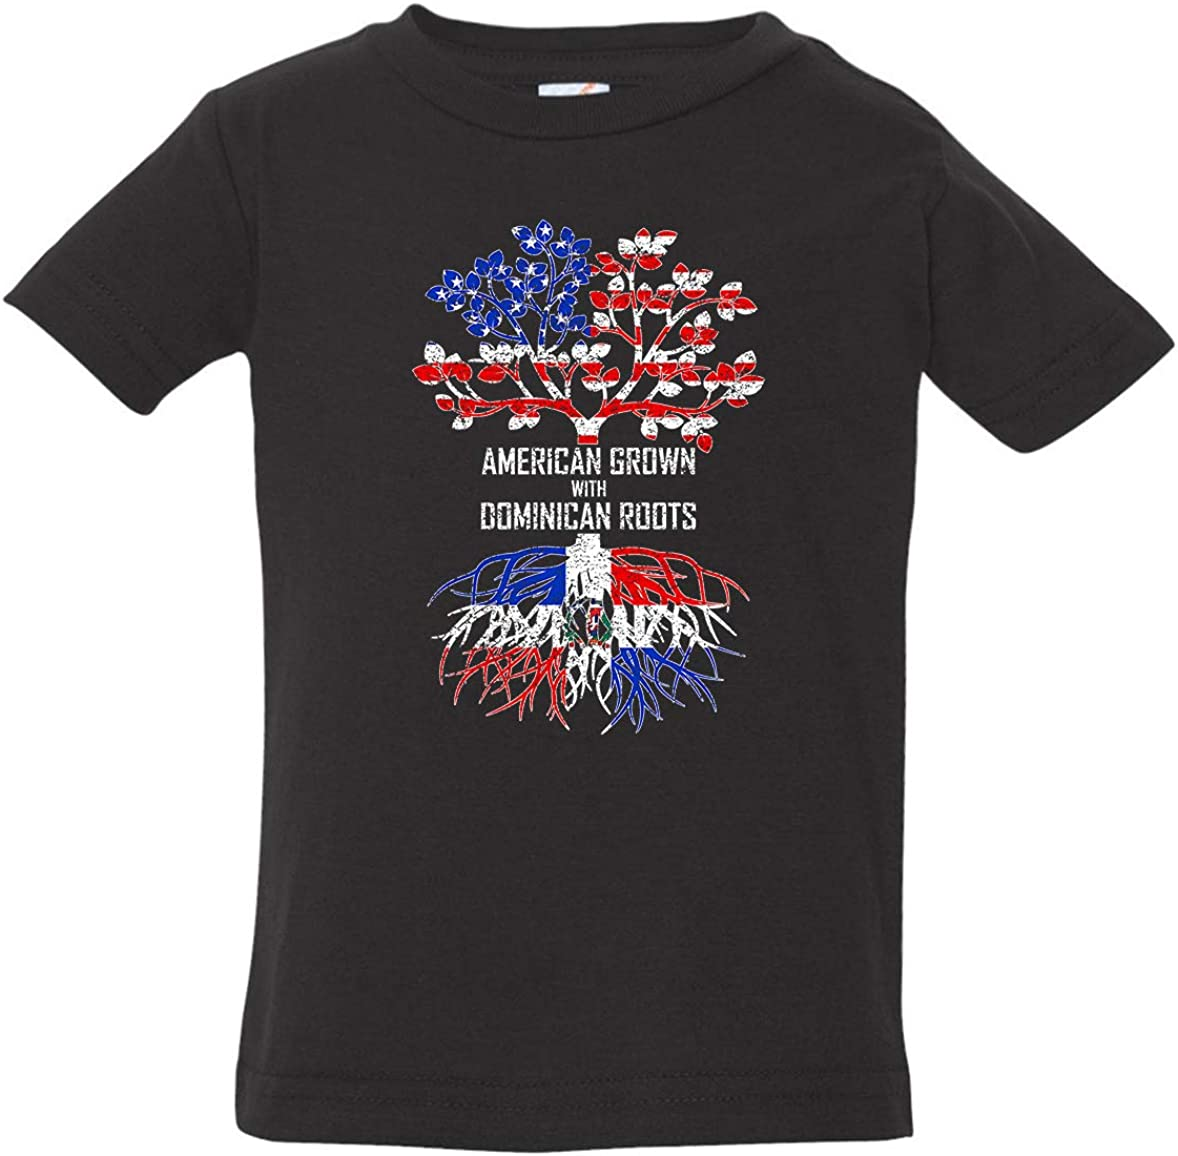 Dominican Republic Shirt Tenacitee Babys American Grown with Dominican Roots